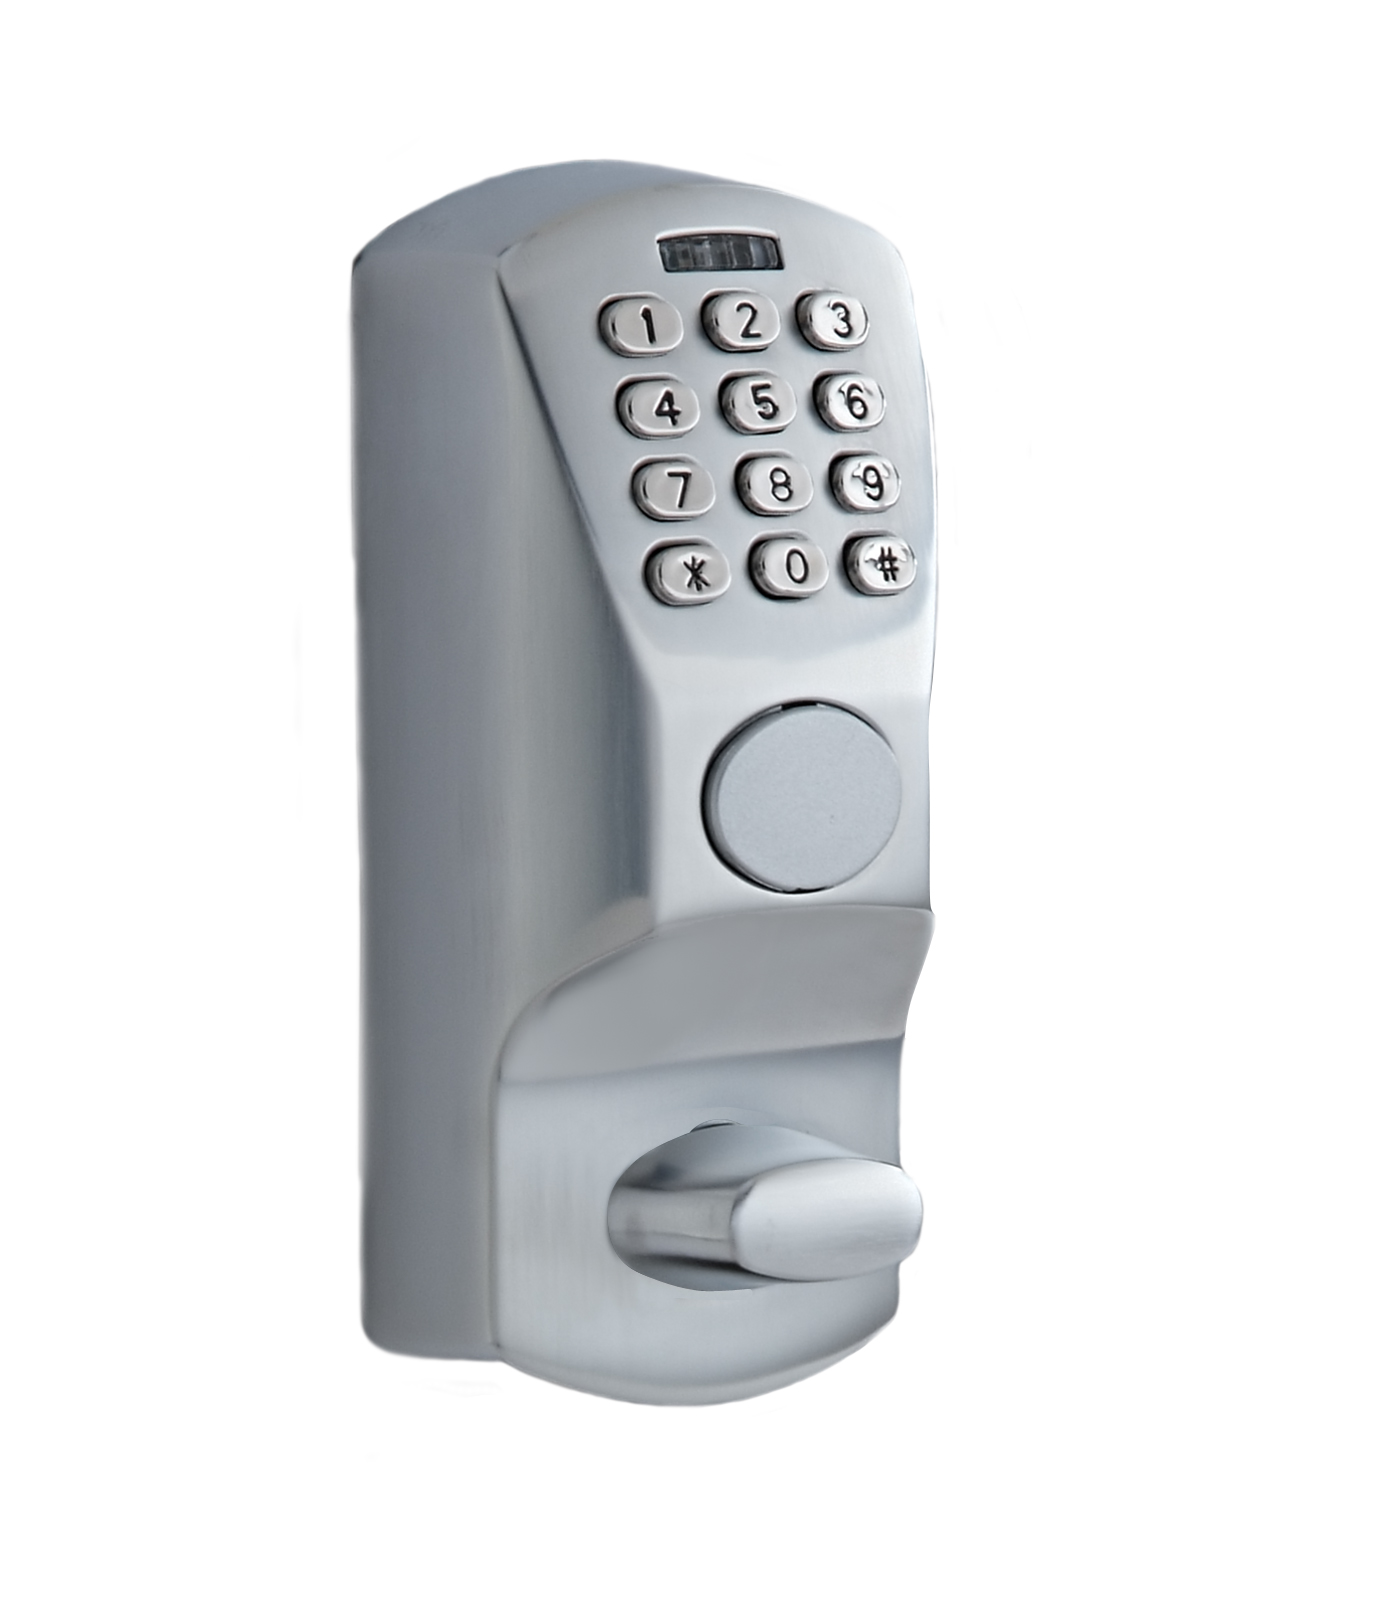 categorized doors locks today the itouchless matic in fingerprint code lock market best door bio for keypad